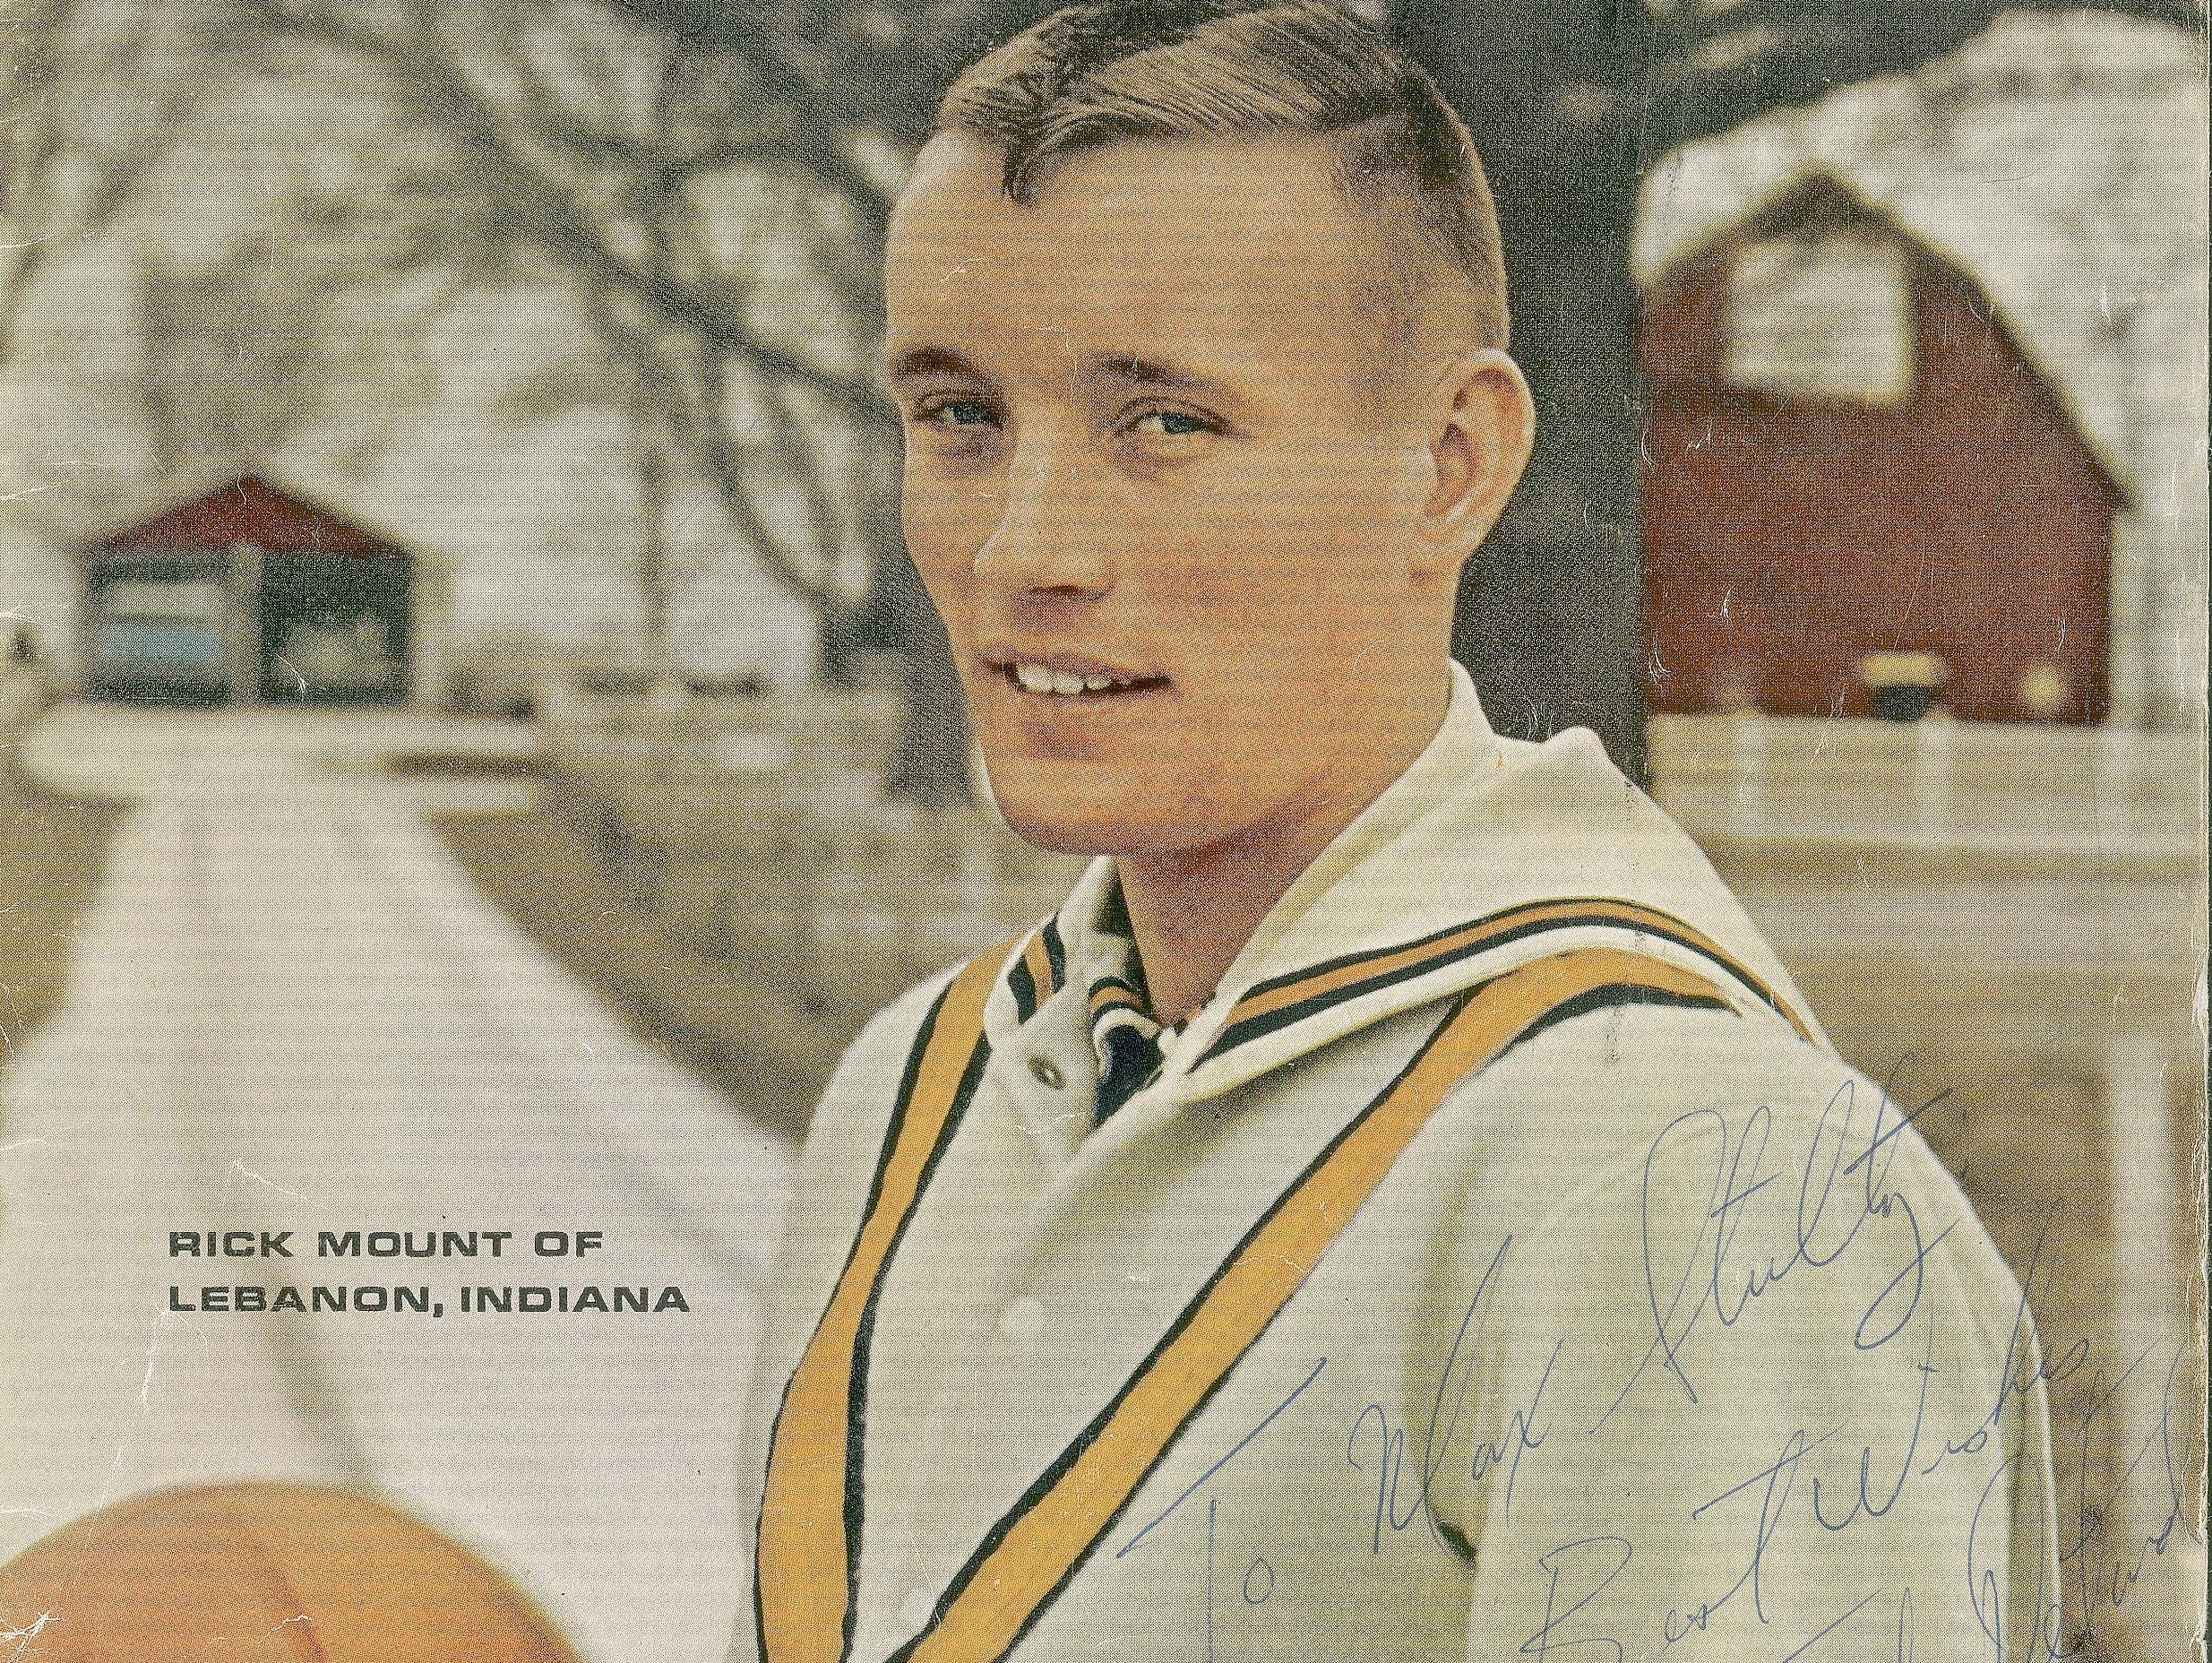 On Feb. 14, 1966, Rick Mount became the first high school basketball player to be featured on the cover of Sports Illustrated.He played for Lebanon High School before playing at Purdue and for the Pacers.